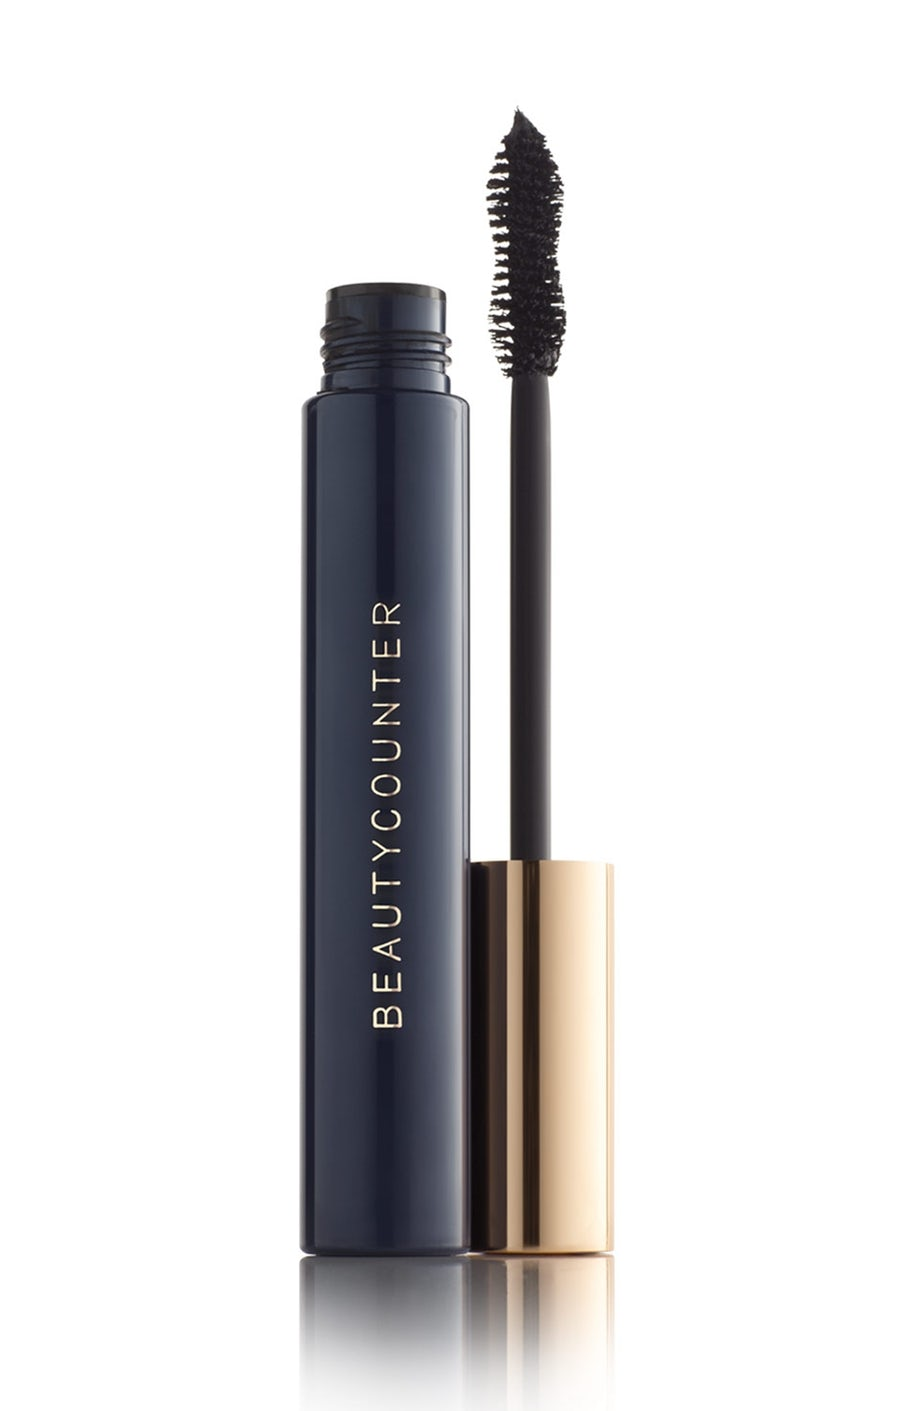 For a perfect, awake eye look!   Made with natural fibers, this advanced formula increases volume by 385%* to create fuller, more dramatic-looking lashes. The hourglass brush curls, separates, and plumps for high-drama glam–without clumping, flaking or smudging. Cleaner, plant-derived ingredients, like carnauba wax and rice bran wax, replace harmful emollients, while bataua oil helps soften lashes.